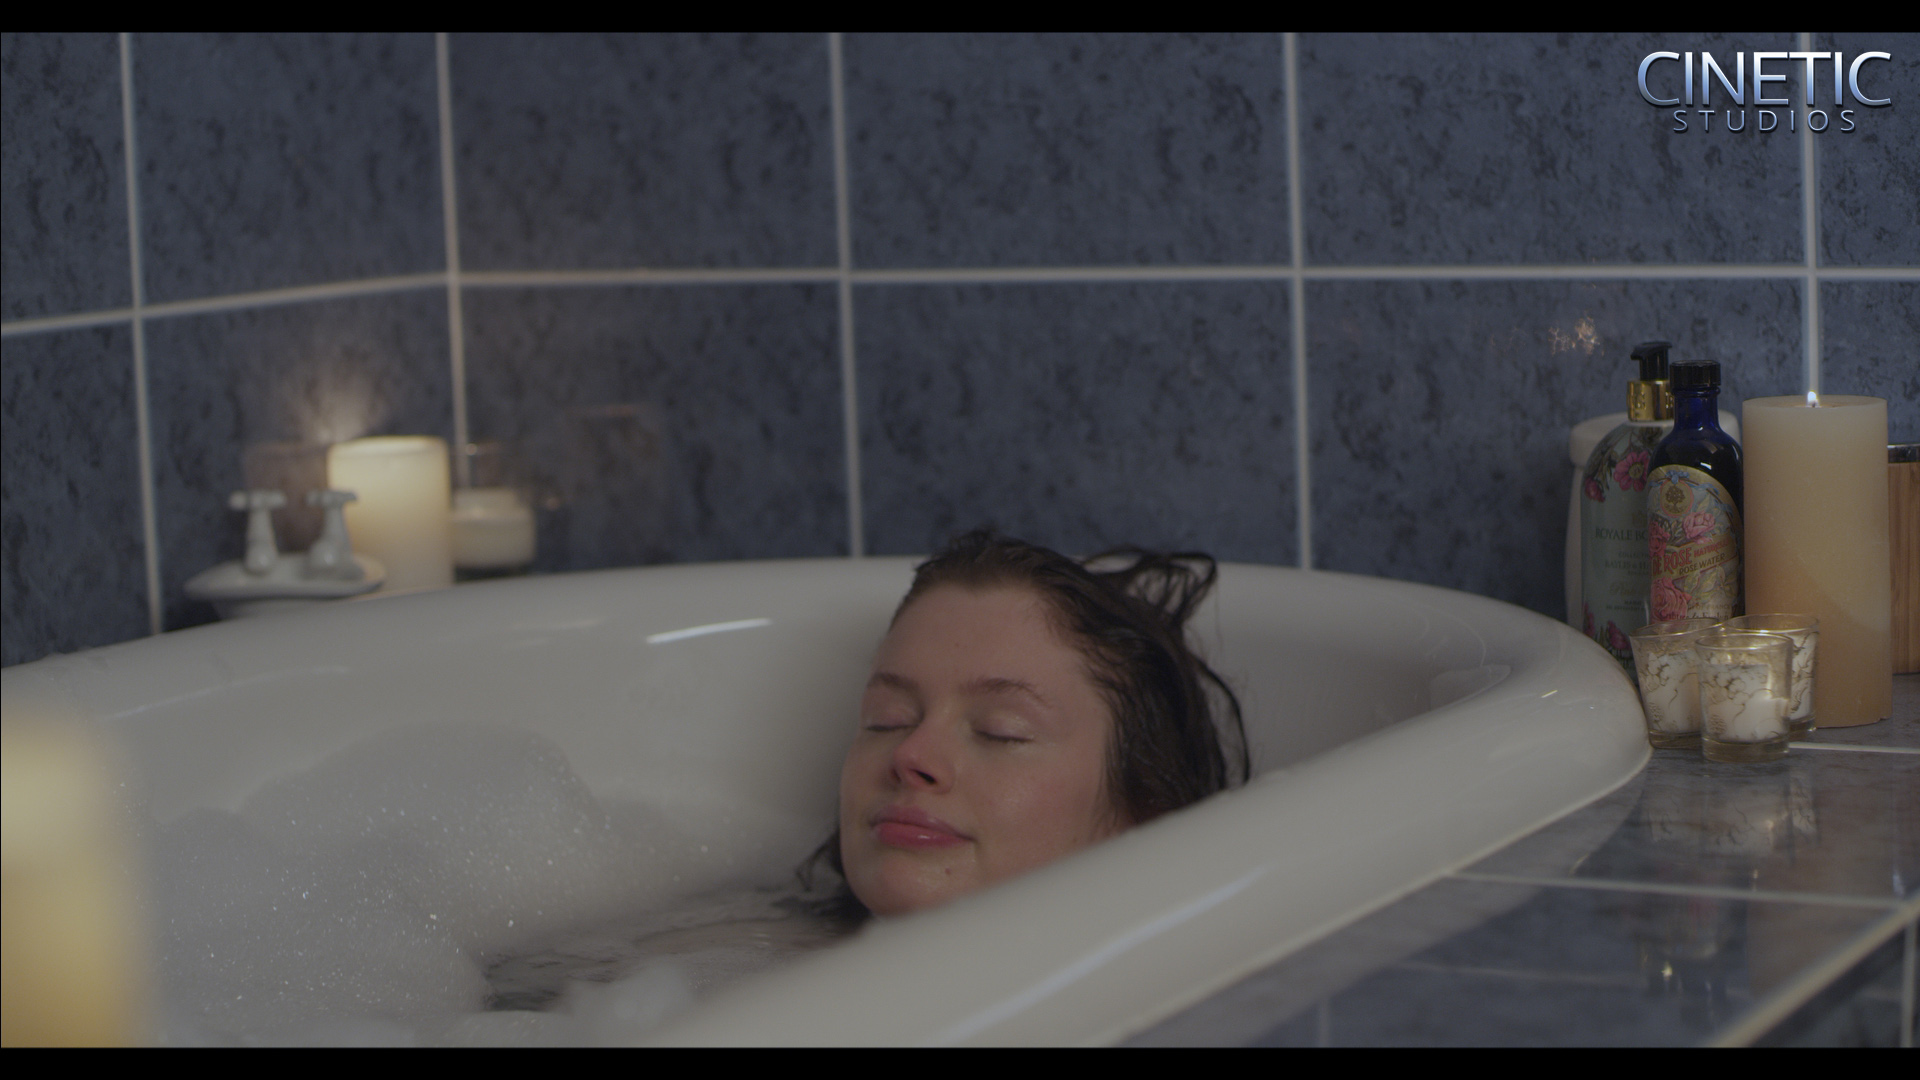 Raw Ungraded sample (aside from basic balance), shot on a RED Epic, Shown in REDLogFilm Gamma